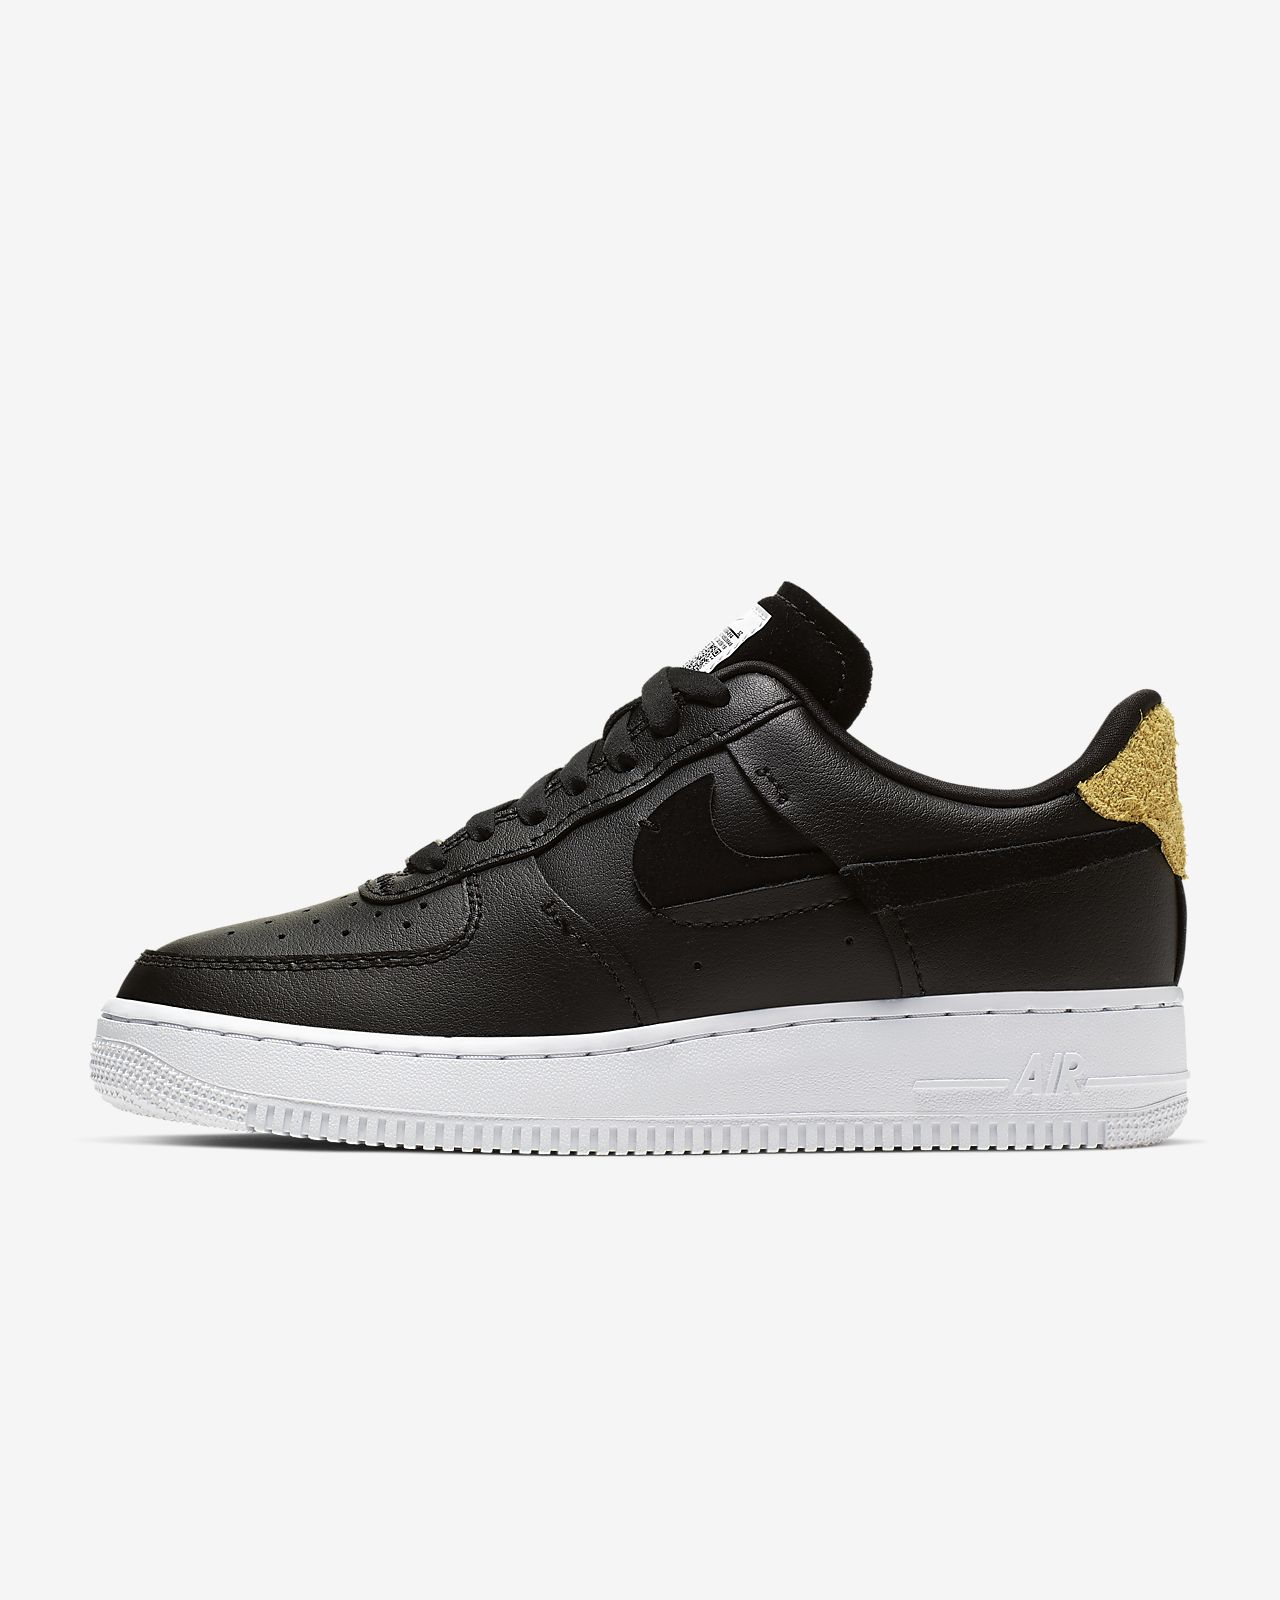 Chaussure Nike Air Force 1 '07 Lux pour Femme